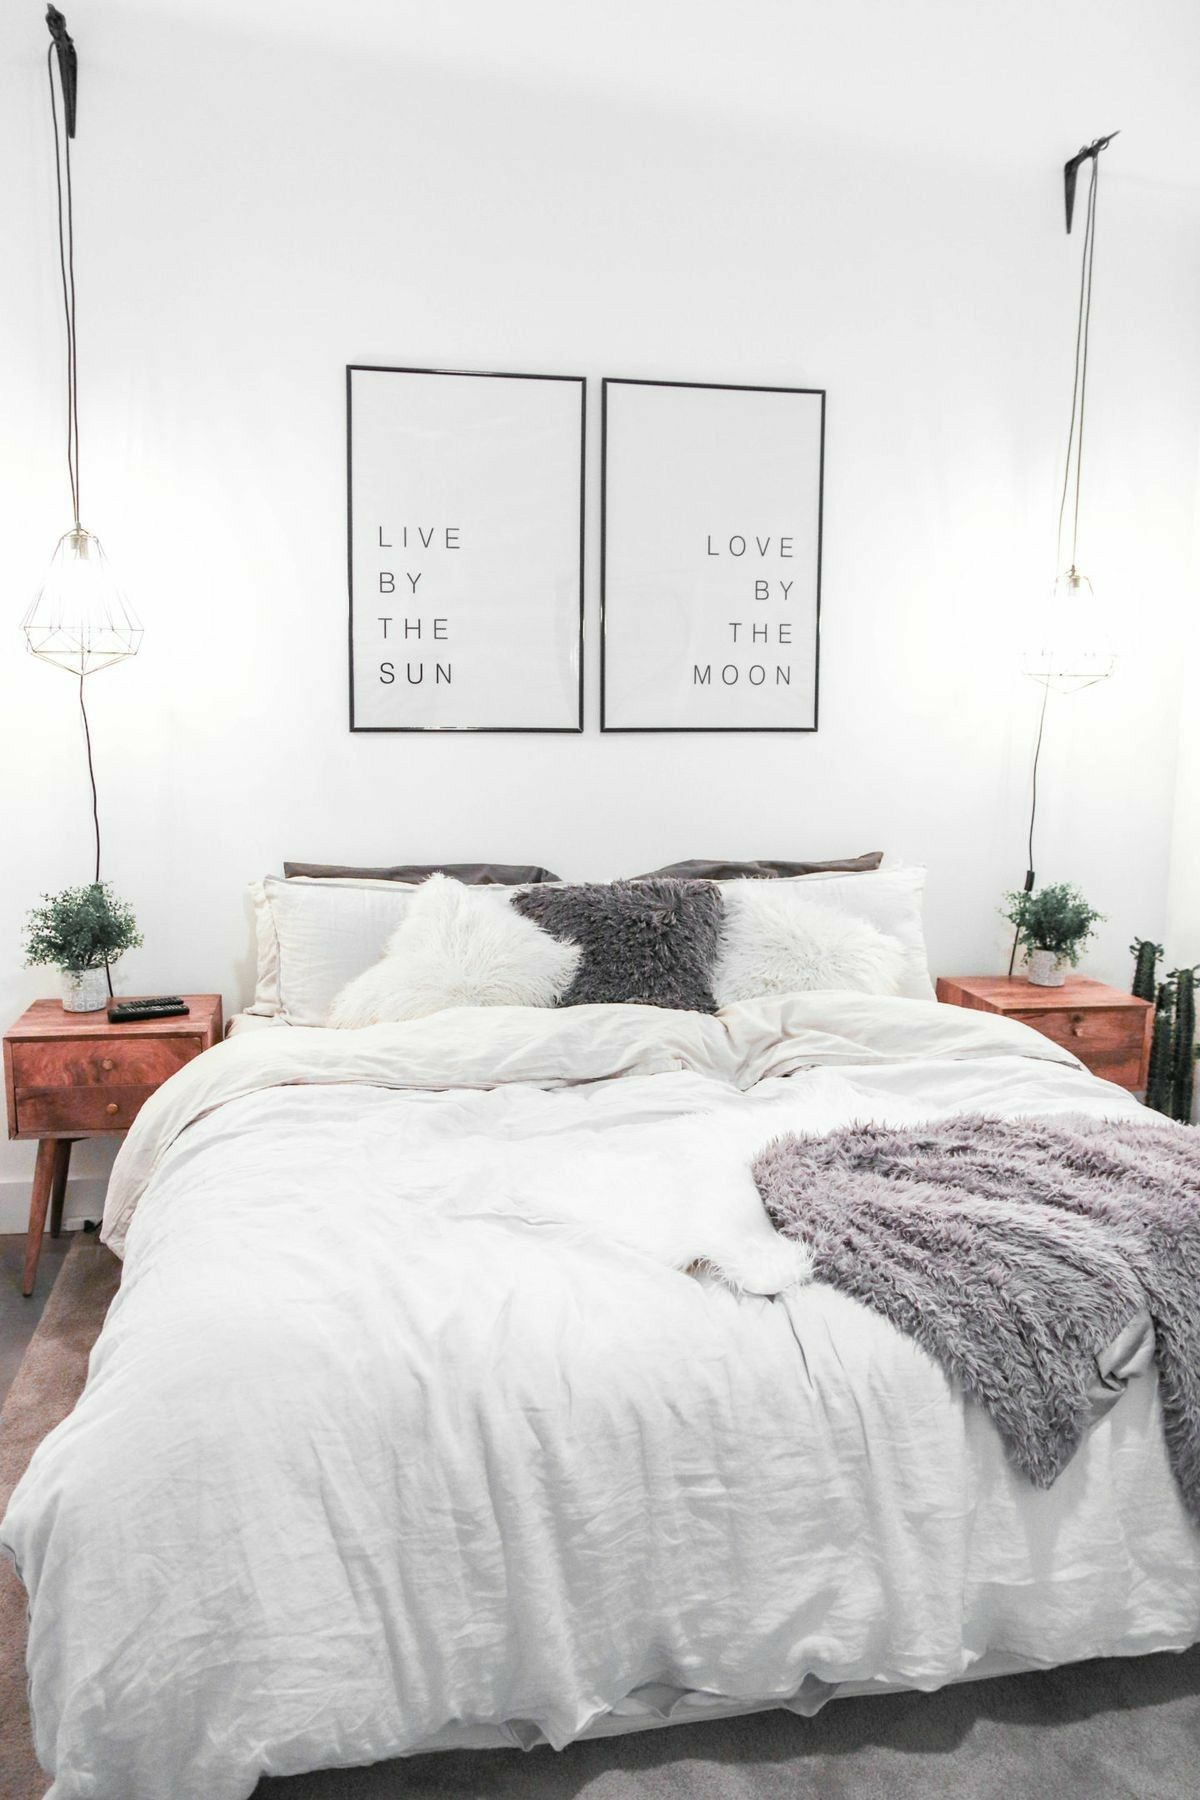 Live by the sun love by the moon wall art home pinterest